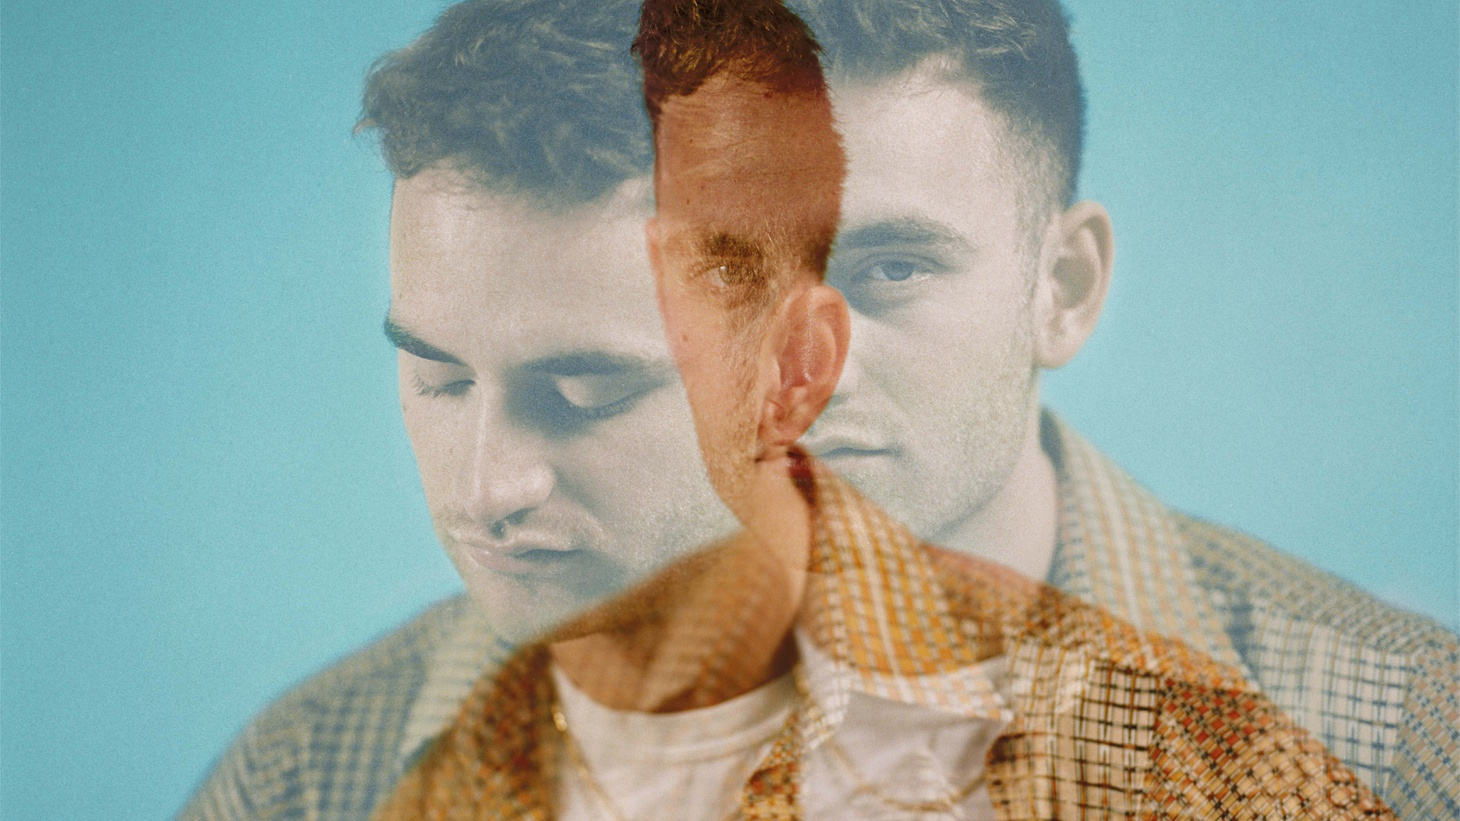 """Tom Misch was voted """"Best New Artist"""" by KCRW's Djs last year and just released his debut album. He's a musical chameleon who hopscotches across genres with ease, and we can't wait to hear it live in his first US radio session."""